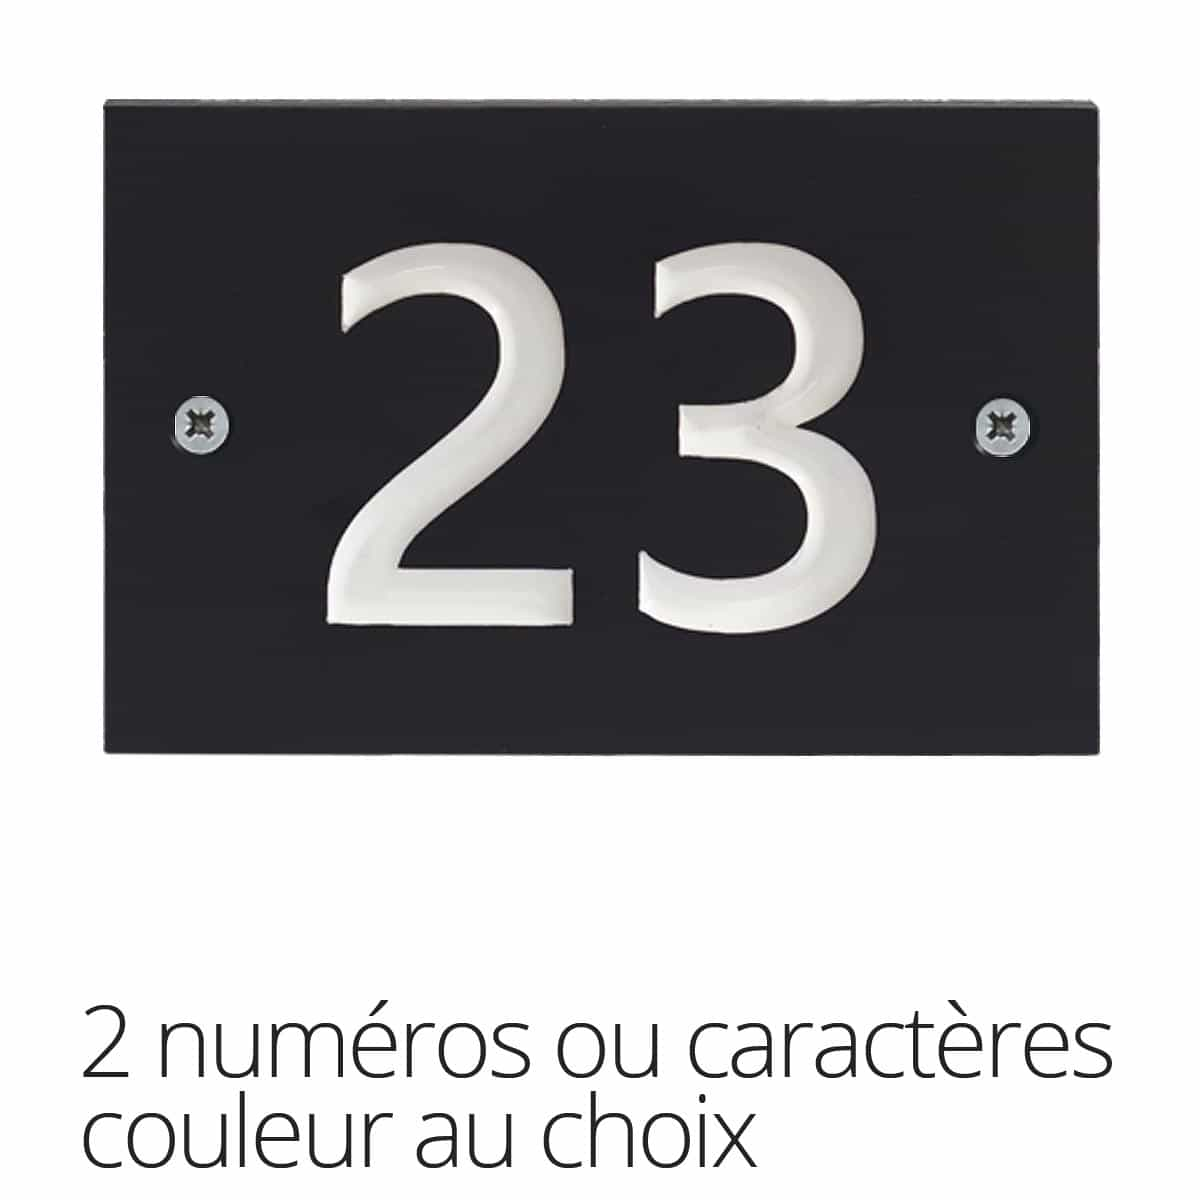 plaque num ro maison 2 caract res en plastique recycl. Black Bedroom Furniture Sets. Home Design Ideas